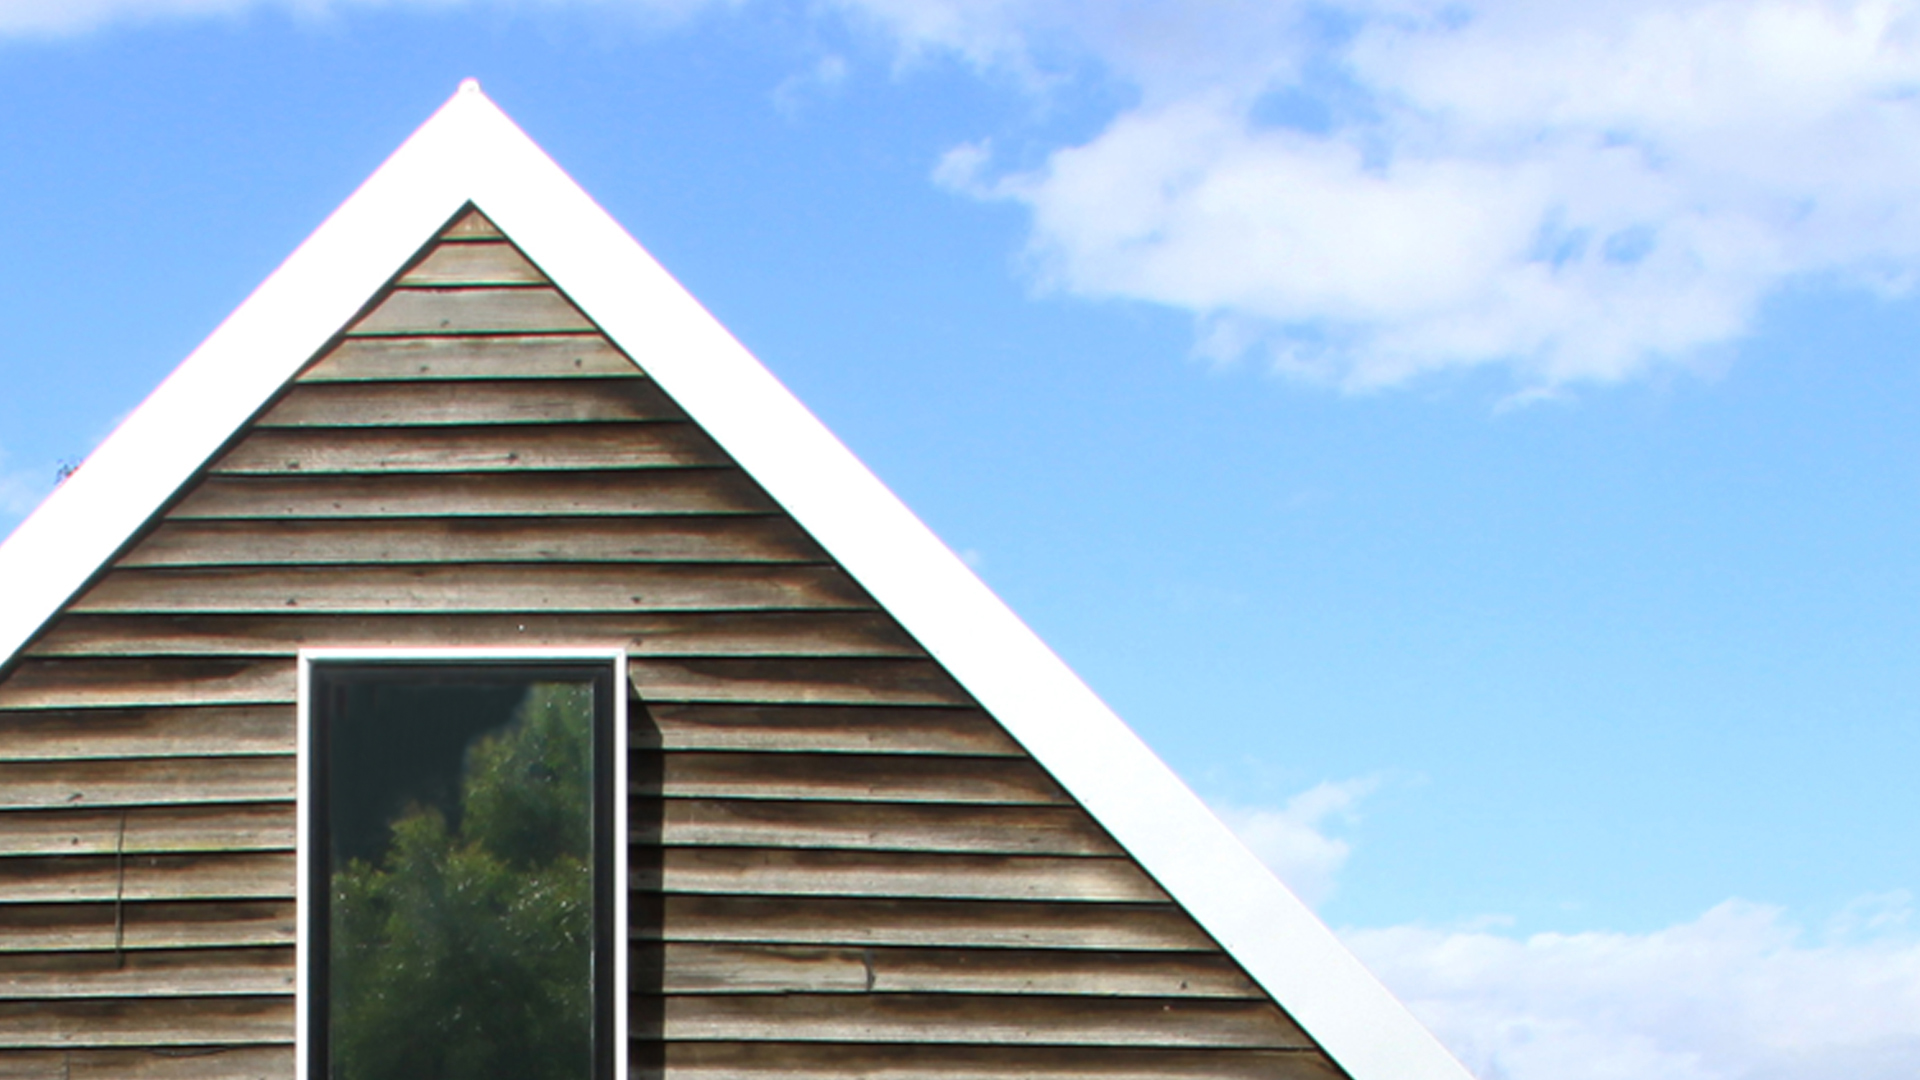 BIG SHED HOUSE – gable roof with window